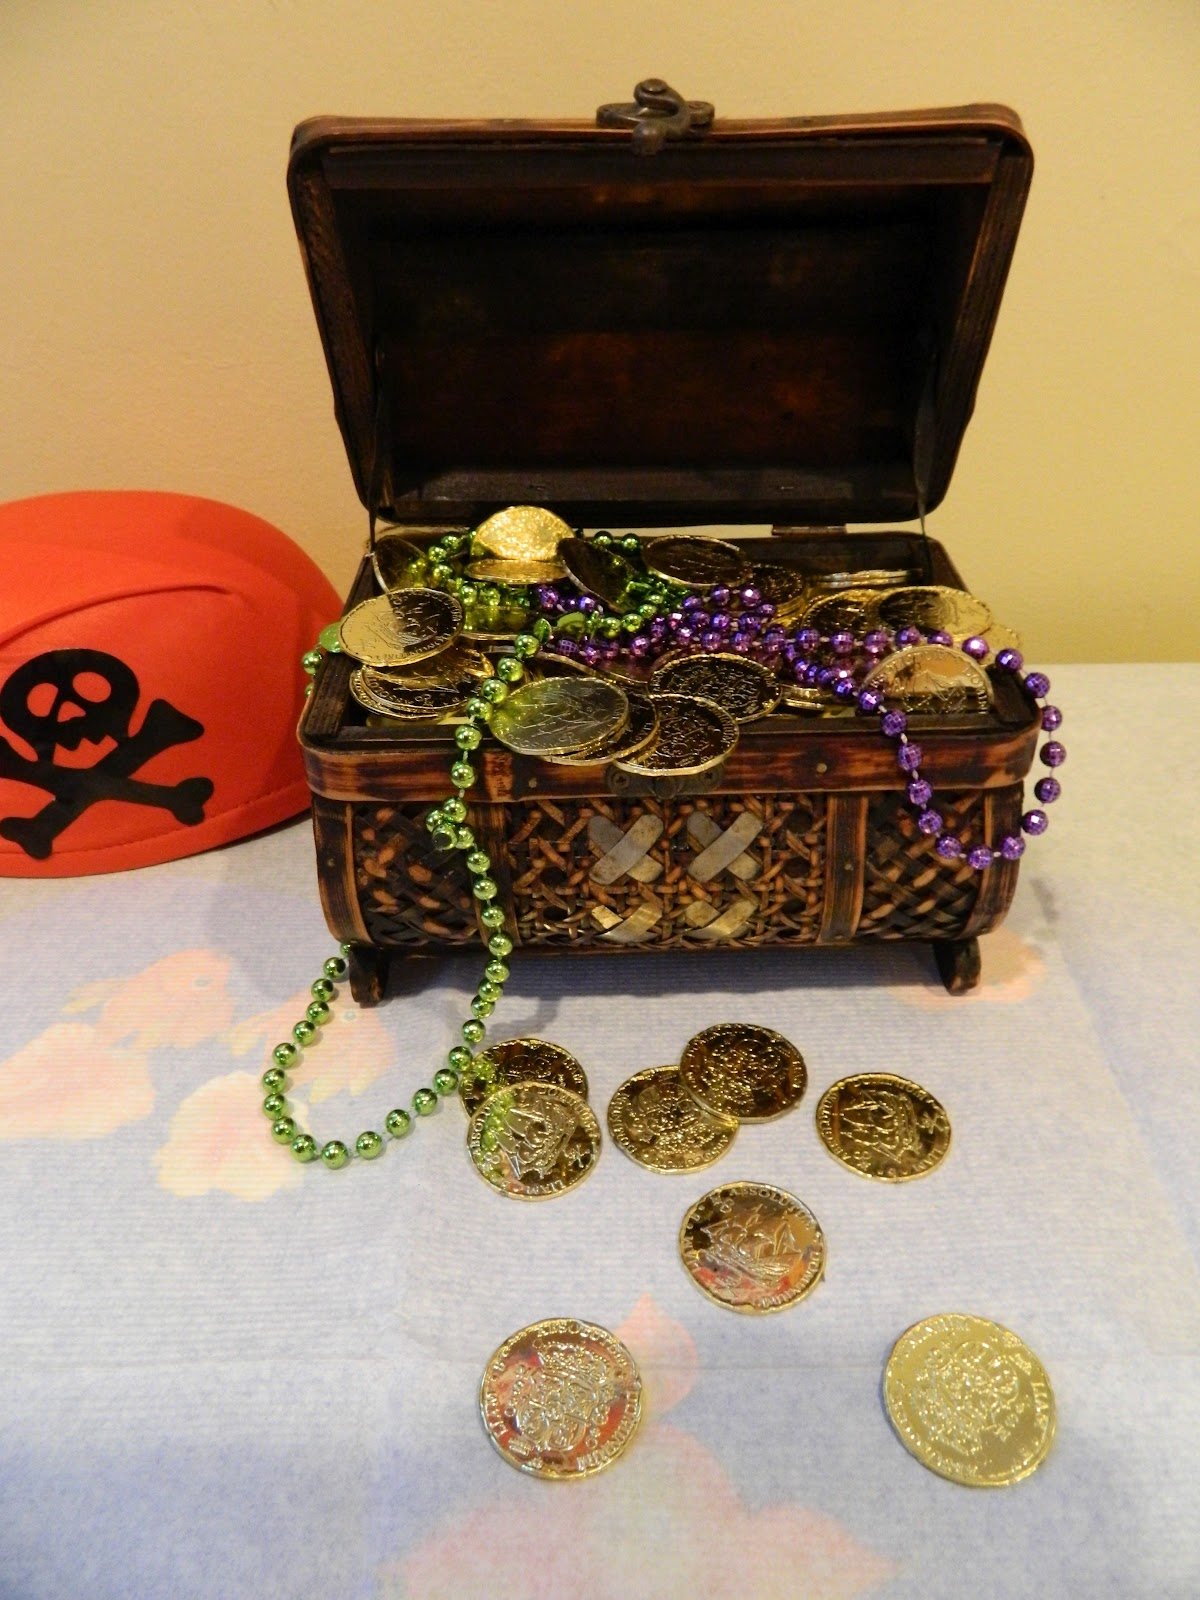 Treasure Chest Decorations Tips Treasures Do It Yourself Pirate Themed Party Decor